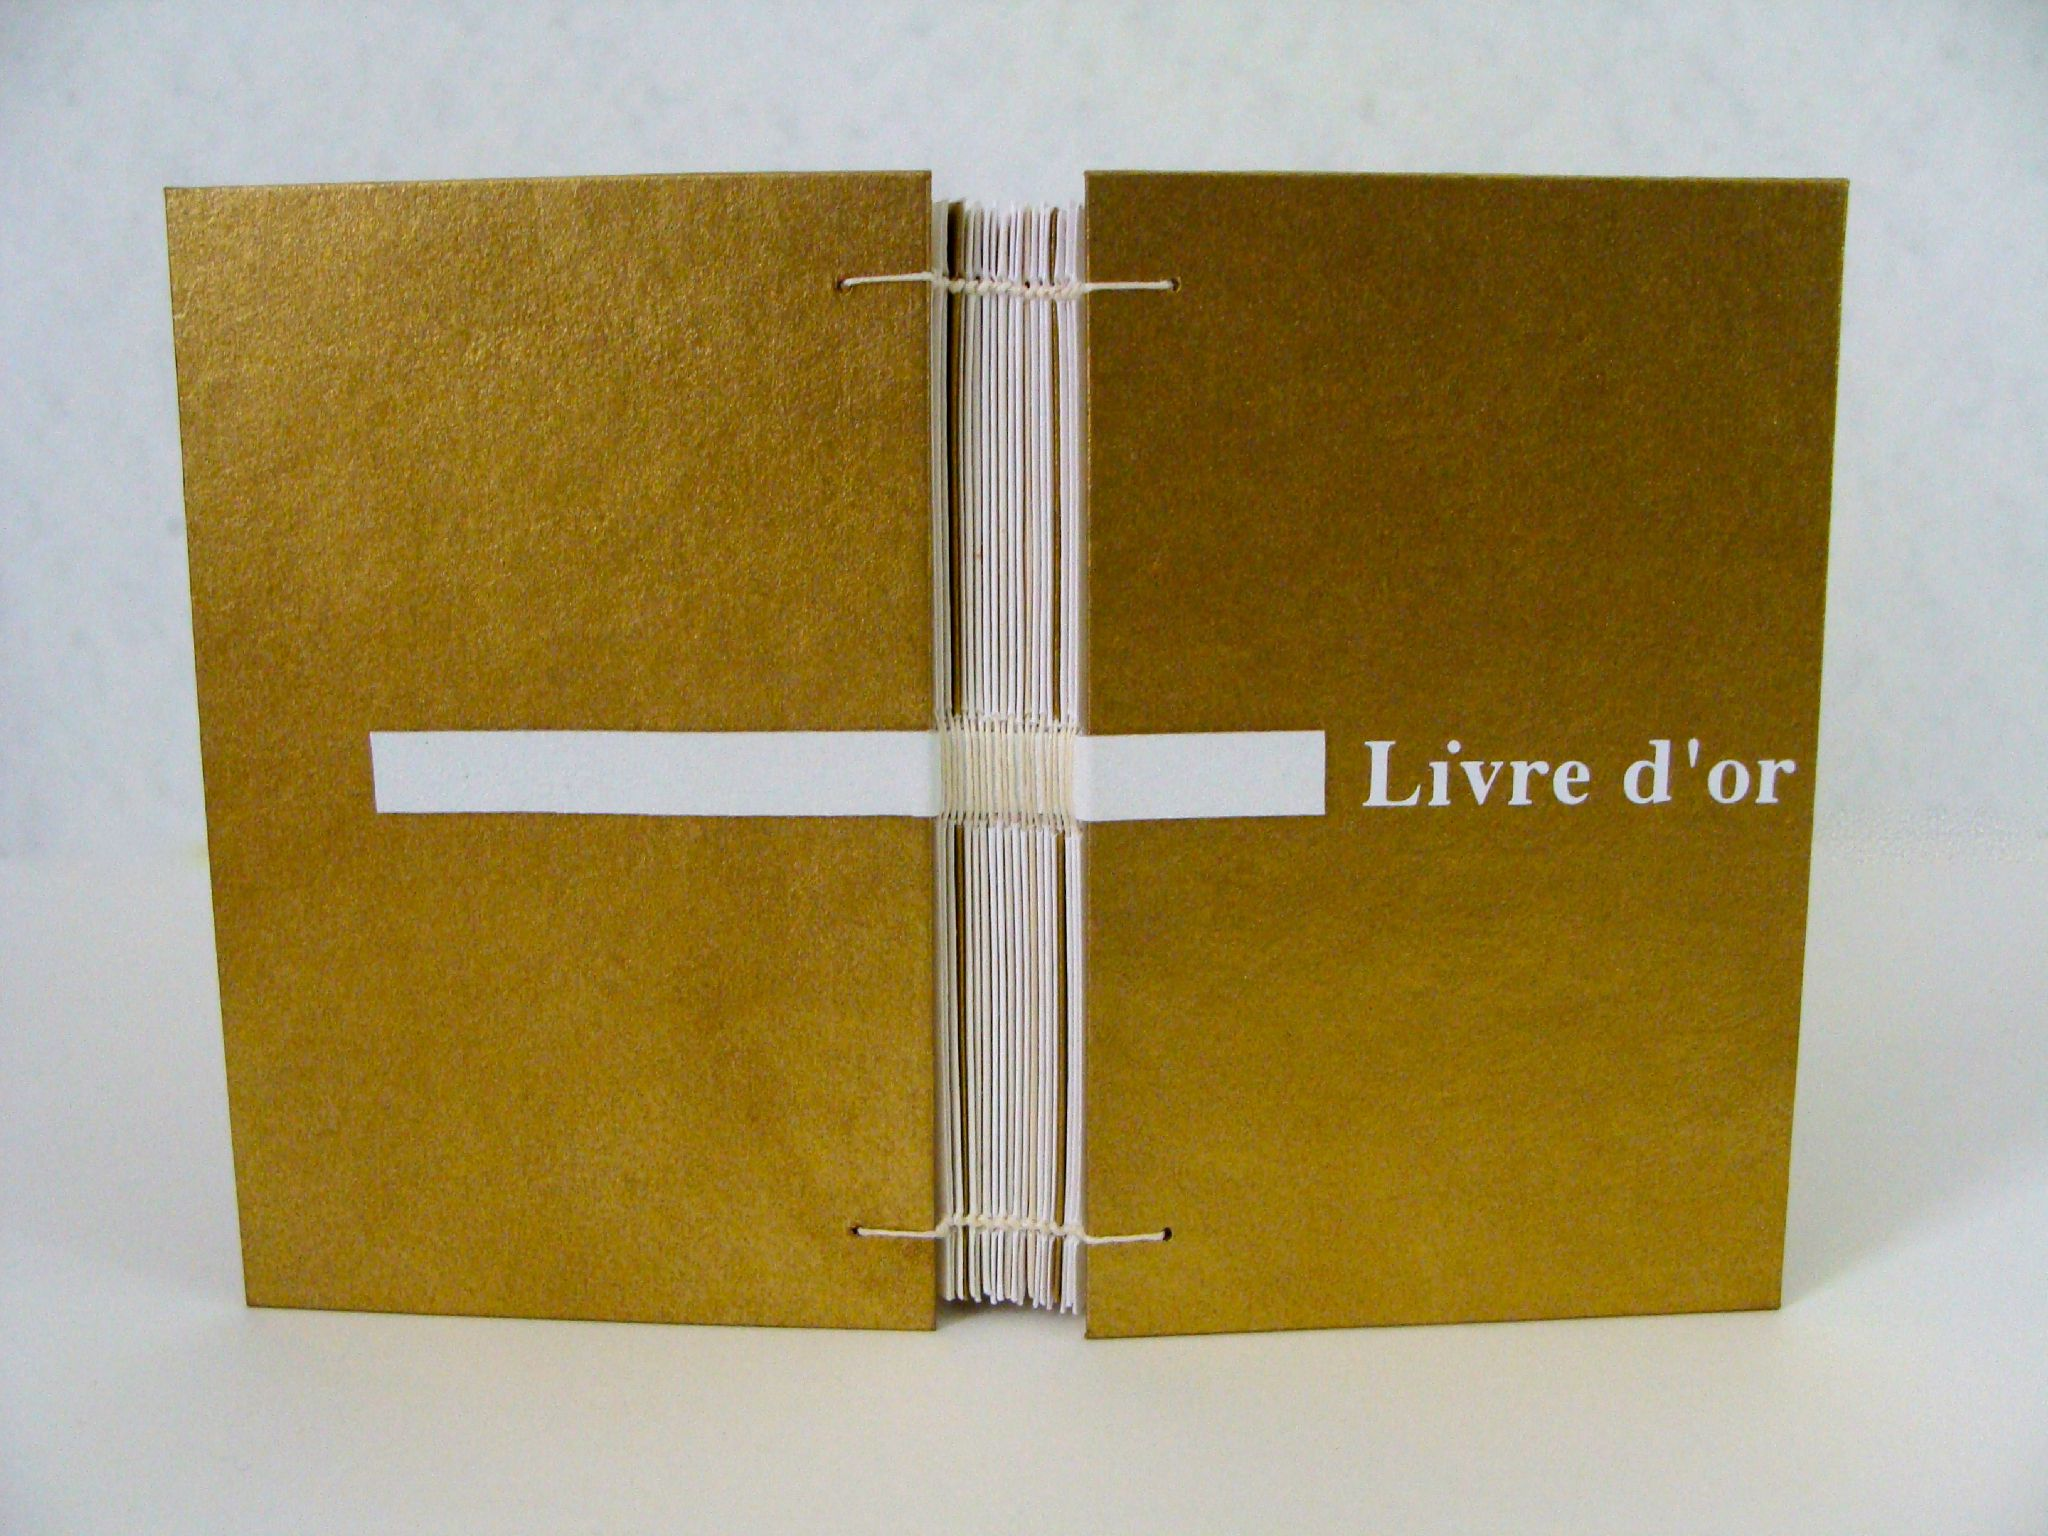 livre d'or original